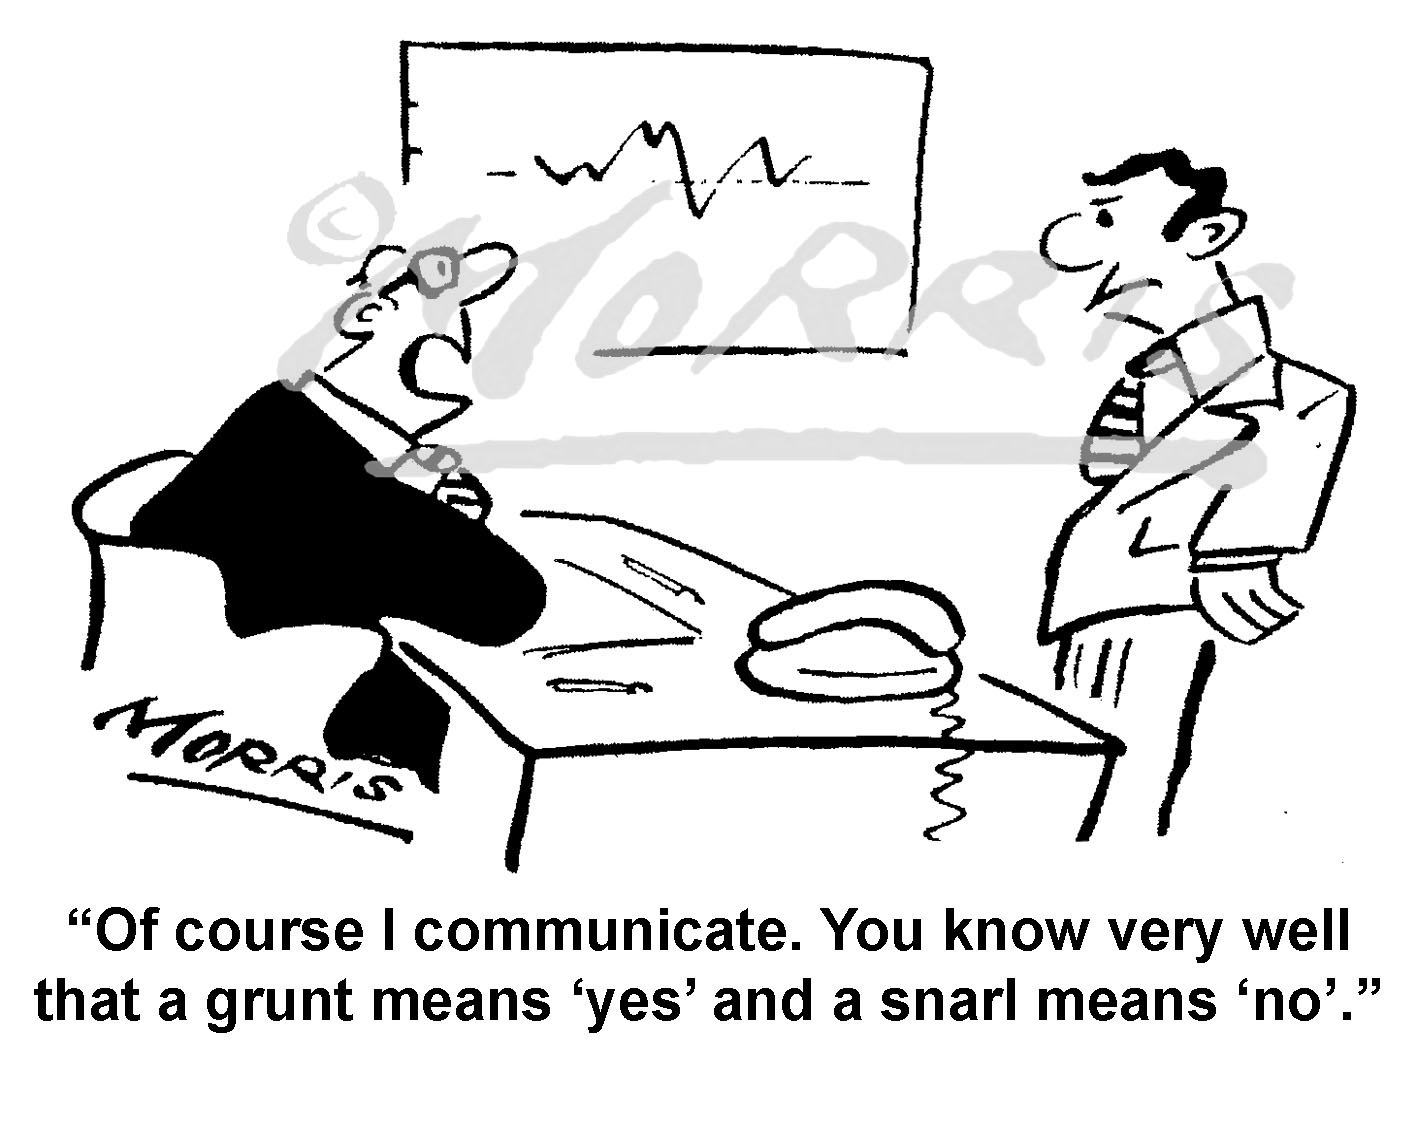 Manager and Employee communication business cartoon – Ref: 6797bw